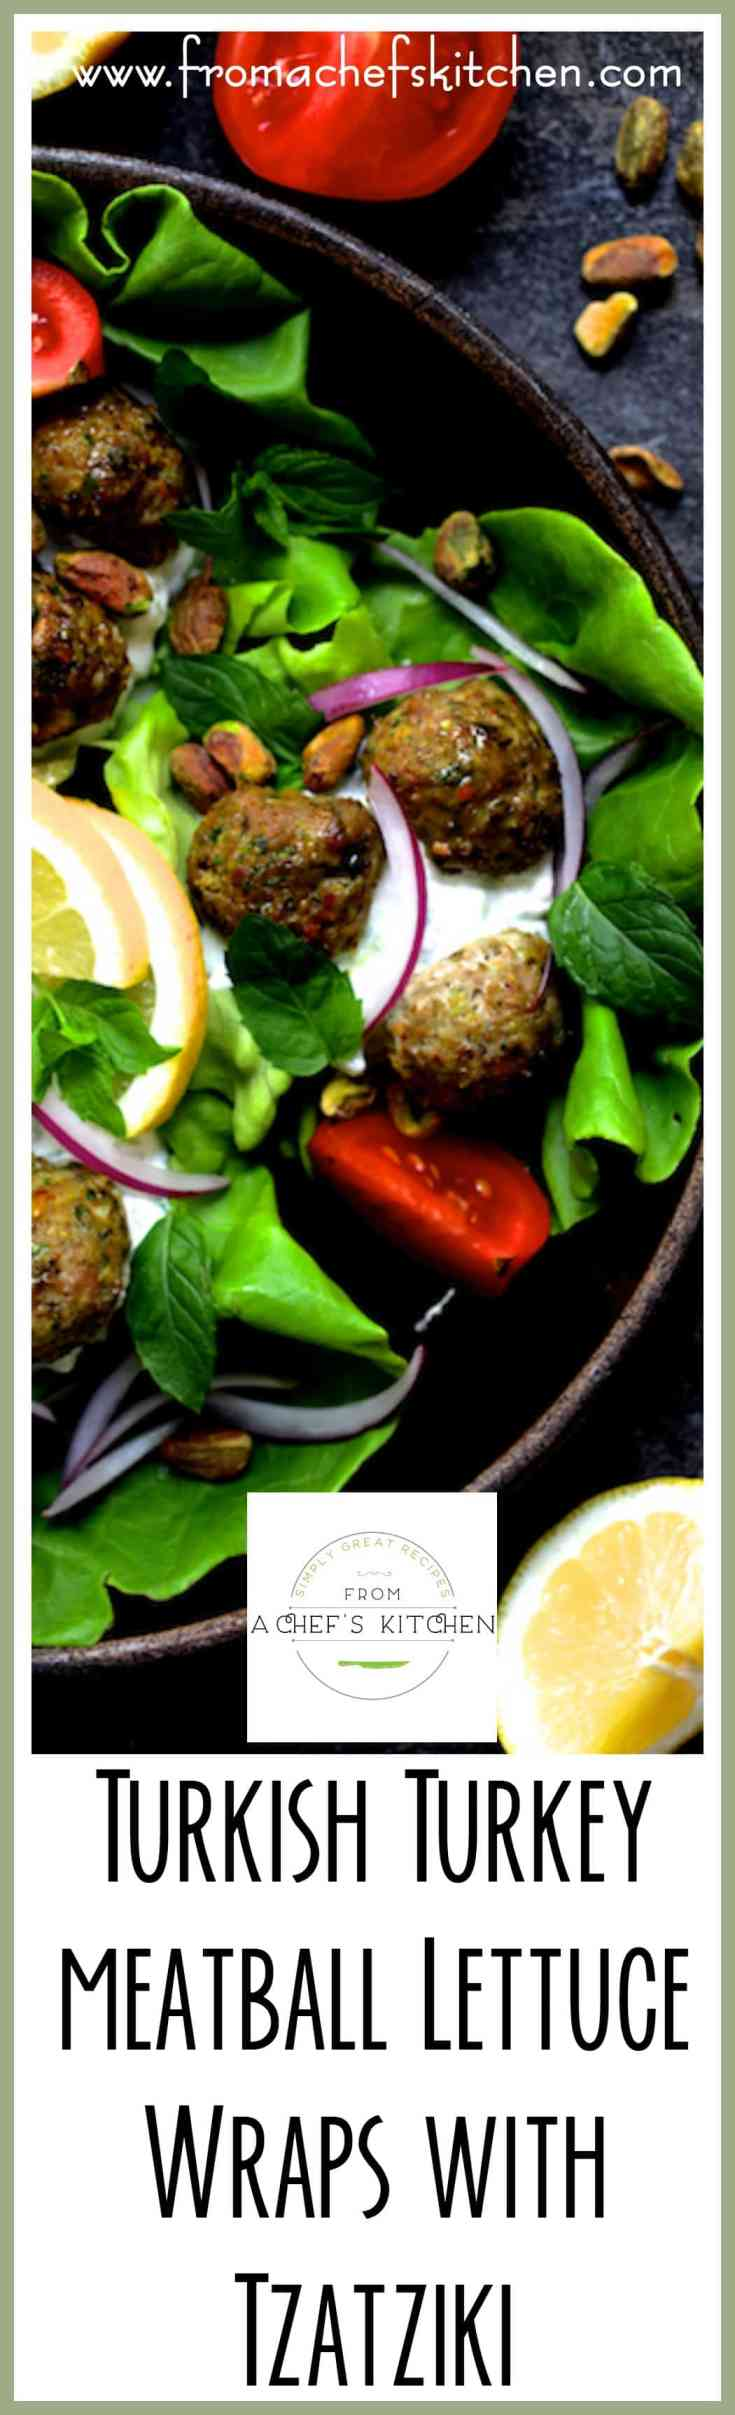 Turkish Turkey Meatball Lettuce Wraps with Tzatziki are healthful, light, easy, fun and so flavorful! It's the perfect summer dinner full of fresh ingredients! #turkishfood #middleeastern #turkey #meatballs #lettuce #lettucewrap #tzatziki